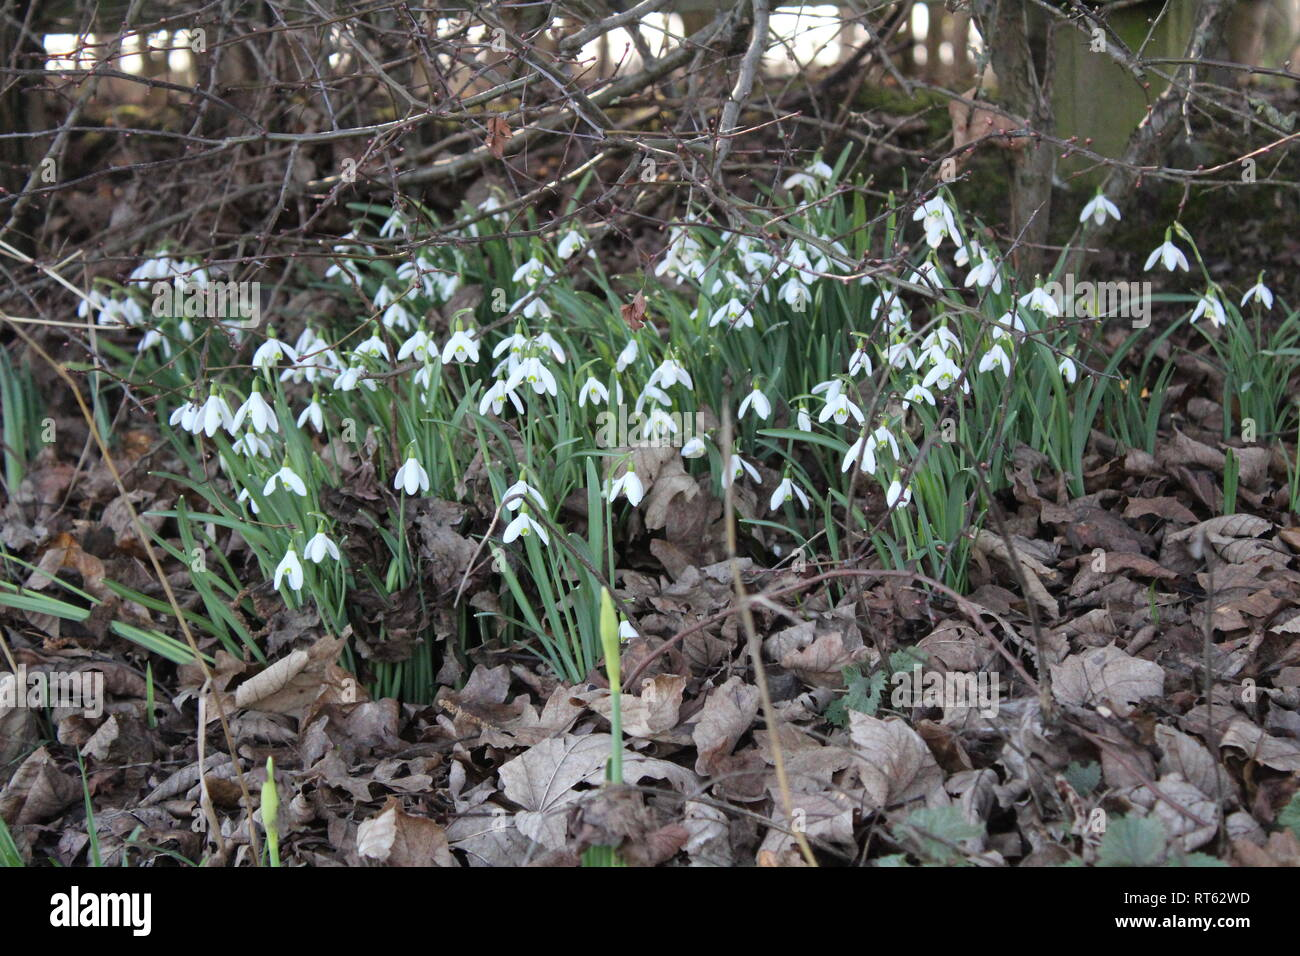 Beer can thrown ,discarded  in clump of snow drops in British countryside - Stock Image